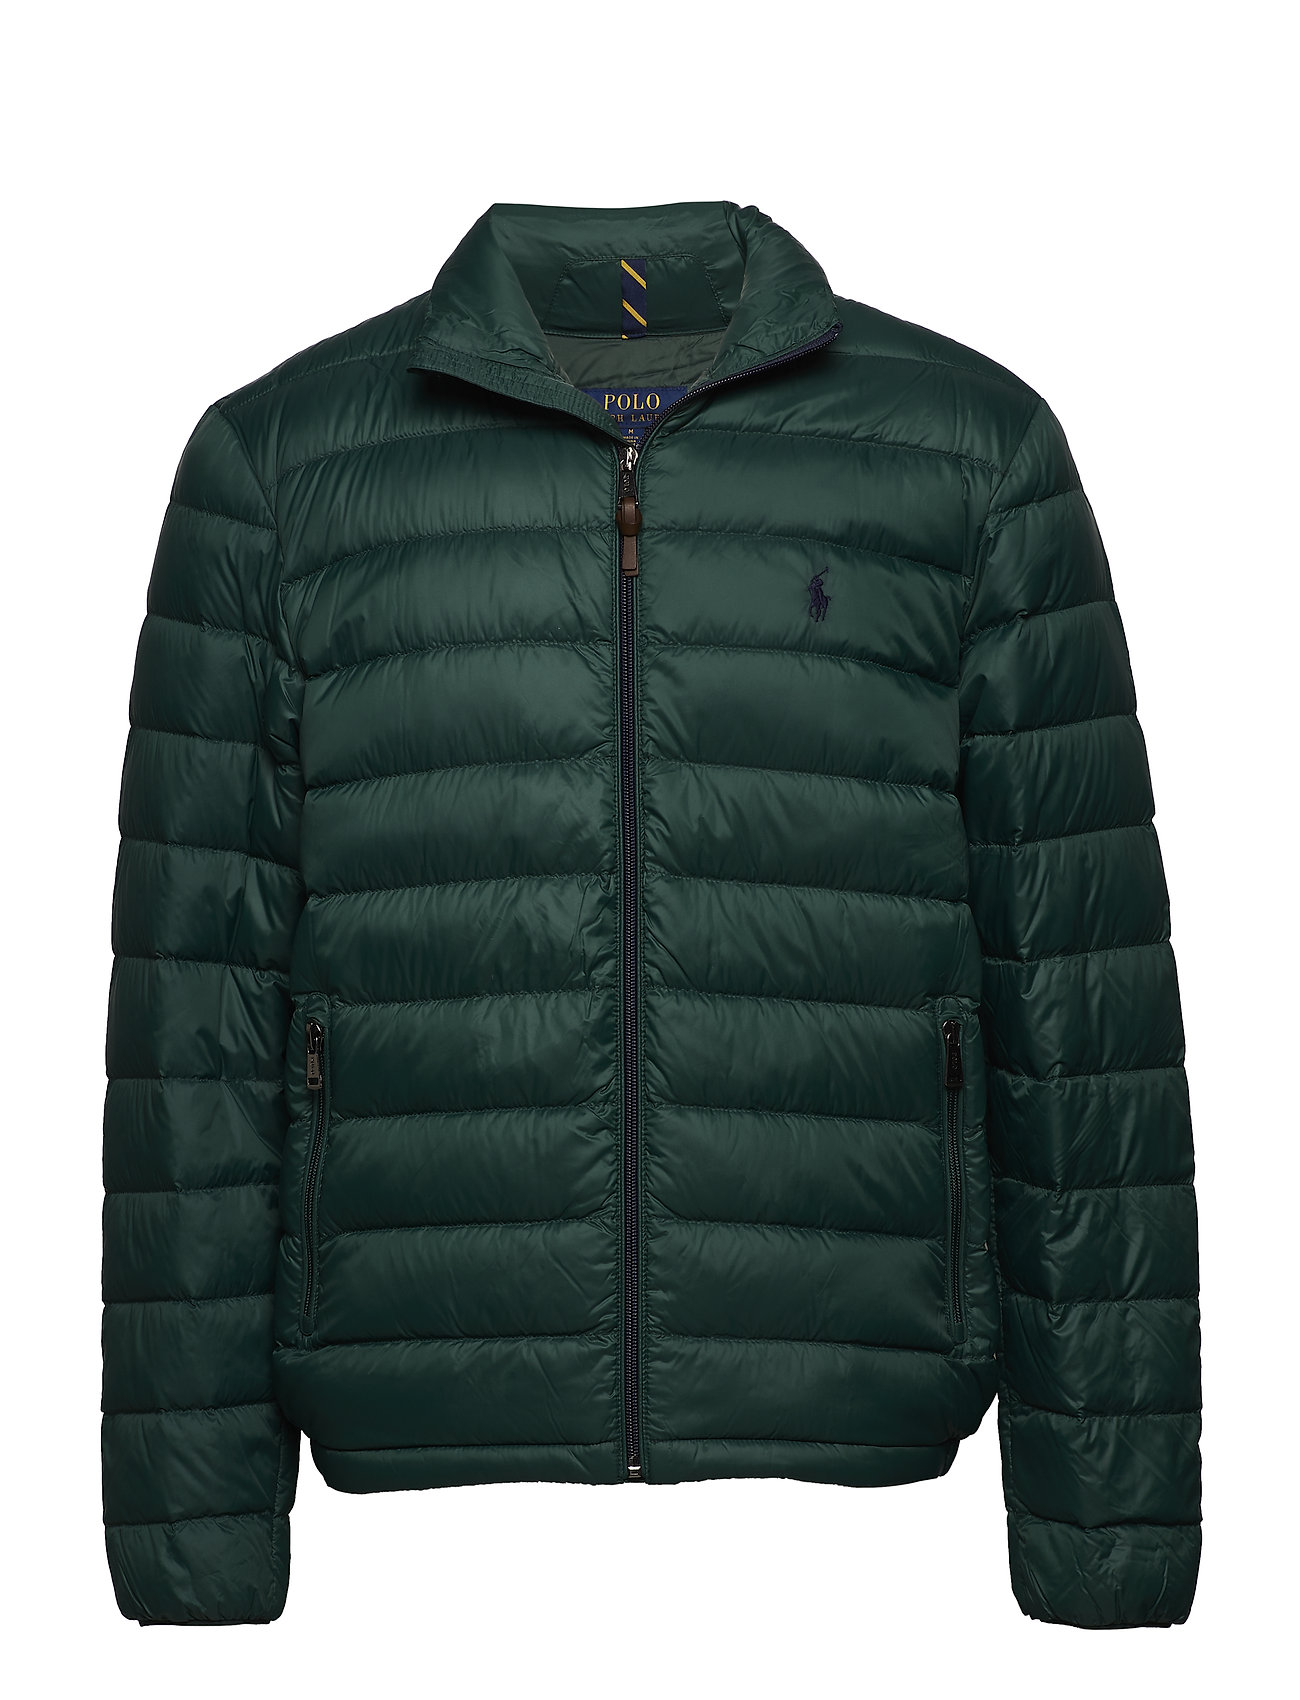 5916ae11e5fe Boozt   Men   Clothing   Outerwear. Polo Ralph Lauren Packable Quilted Down  Jacket